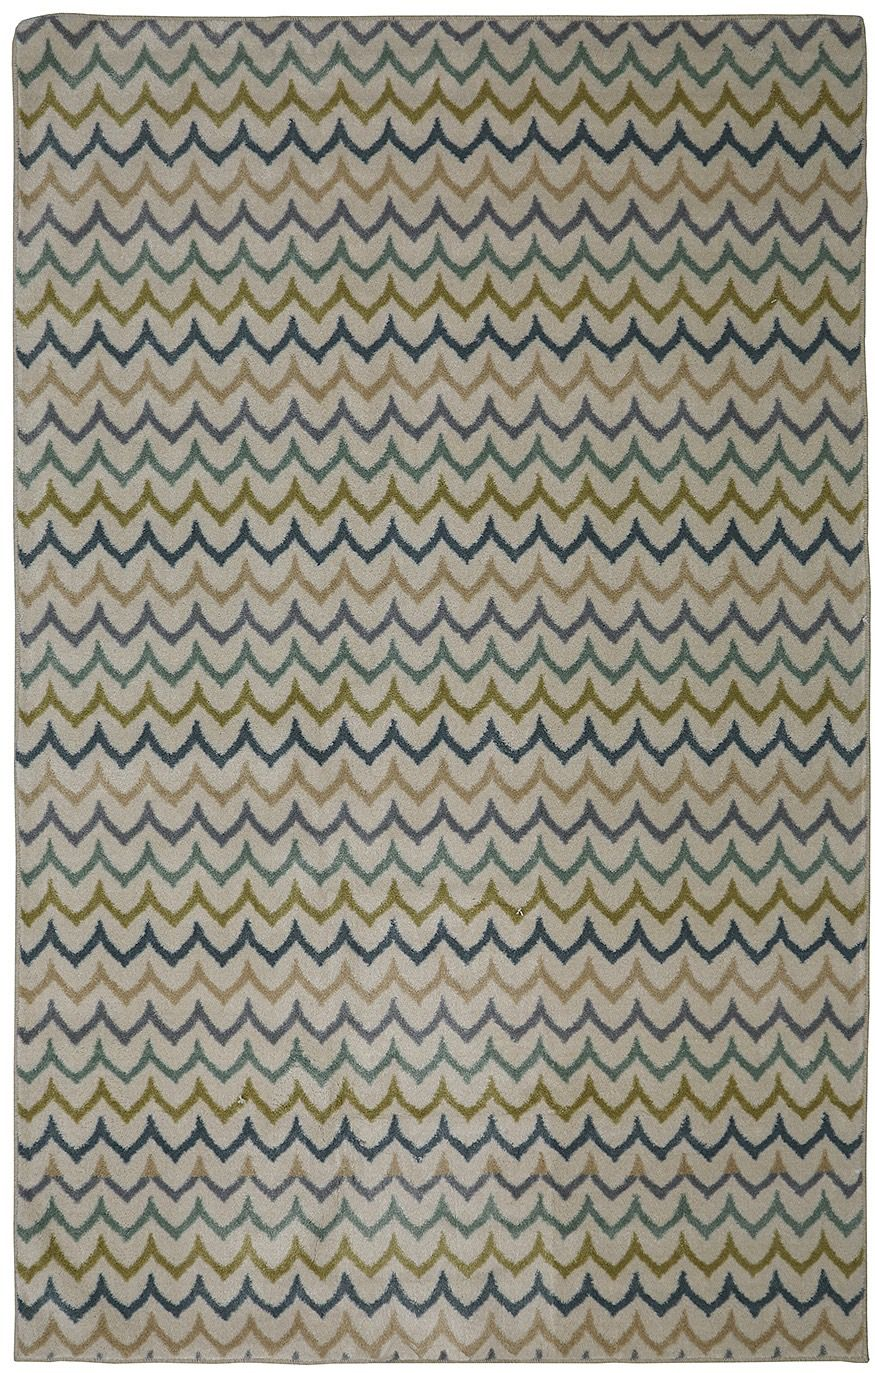 mohawk aurora solid/striped area rug collection